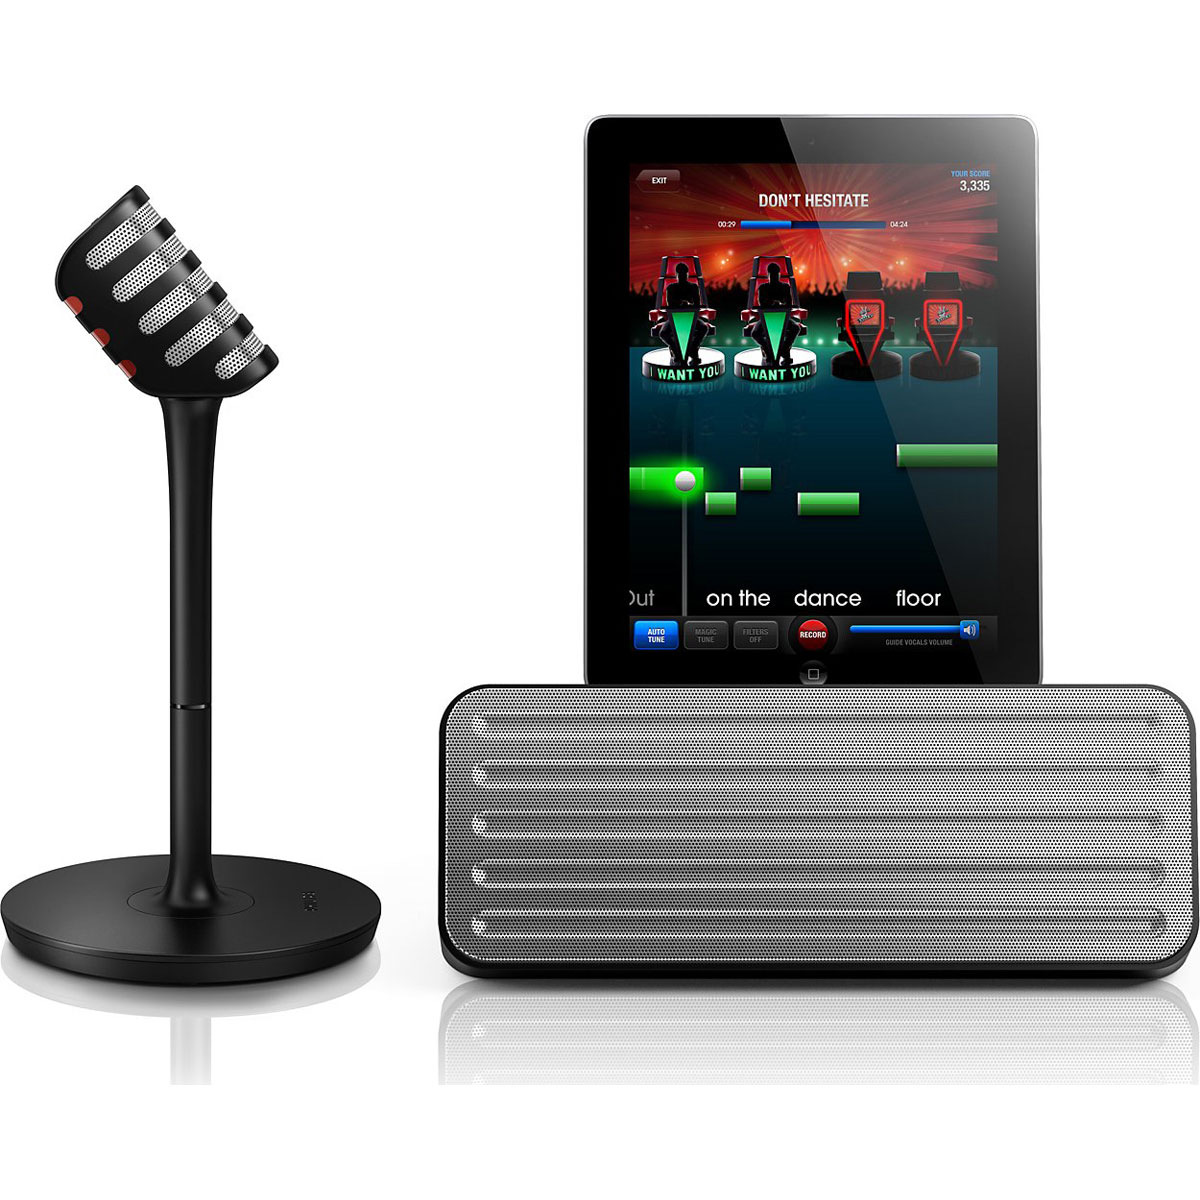 philips aea7000 dock enceinte bluetooth philips sur ldlc. Black Bedroom Furniture Sets. Home Design Ideas